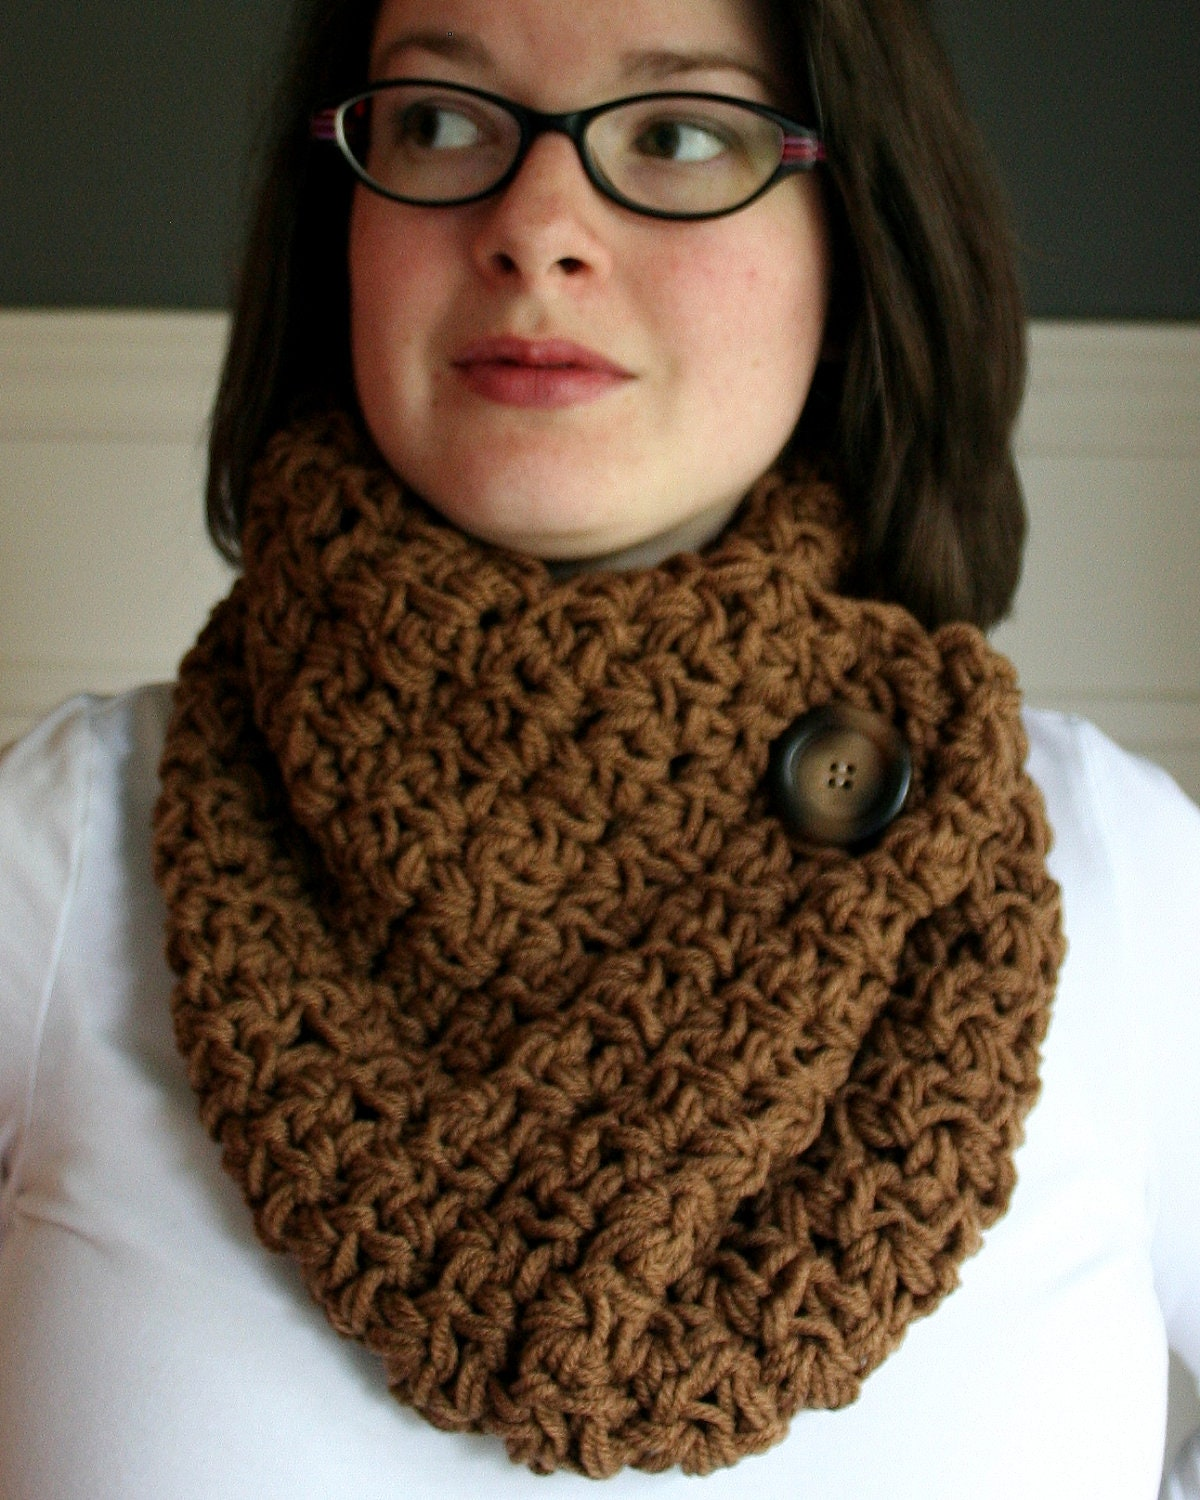 Crocheted Cowl Neck Scarf in Mocha Brown with brown and tan button Cowl Neck Scarves Crochet